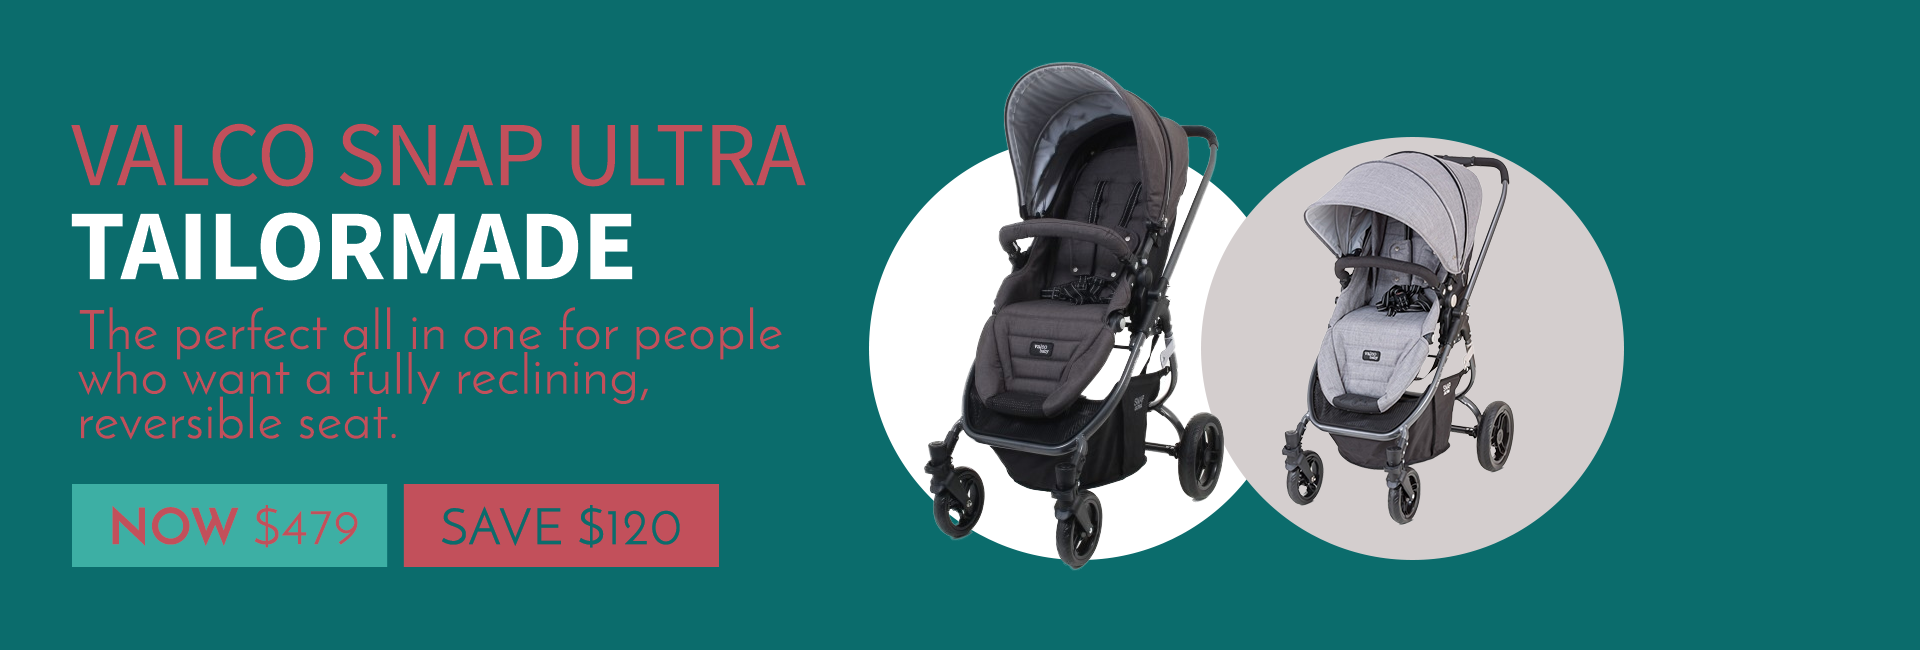 Valco Baby Snap Ultra Tailormade Sale